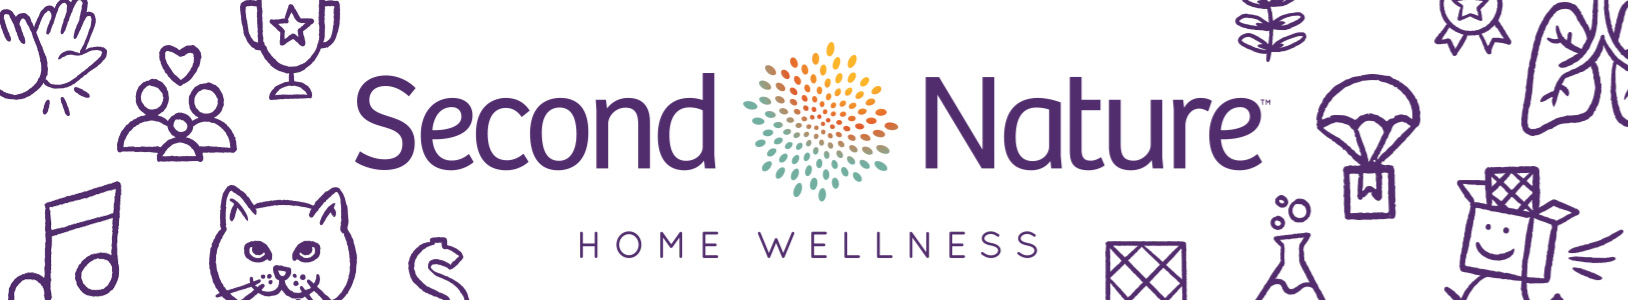 Second Nature logo centered among home wellness items